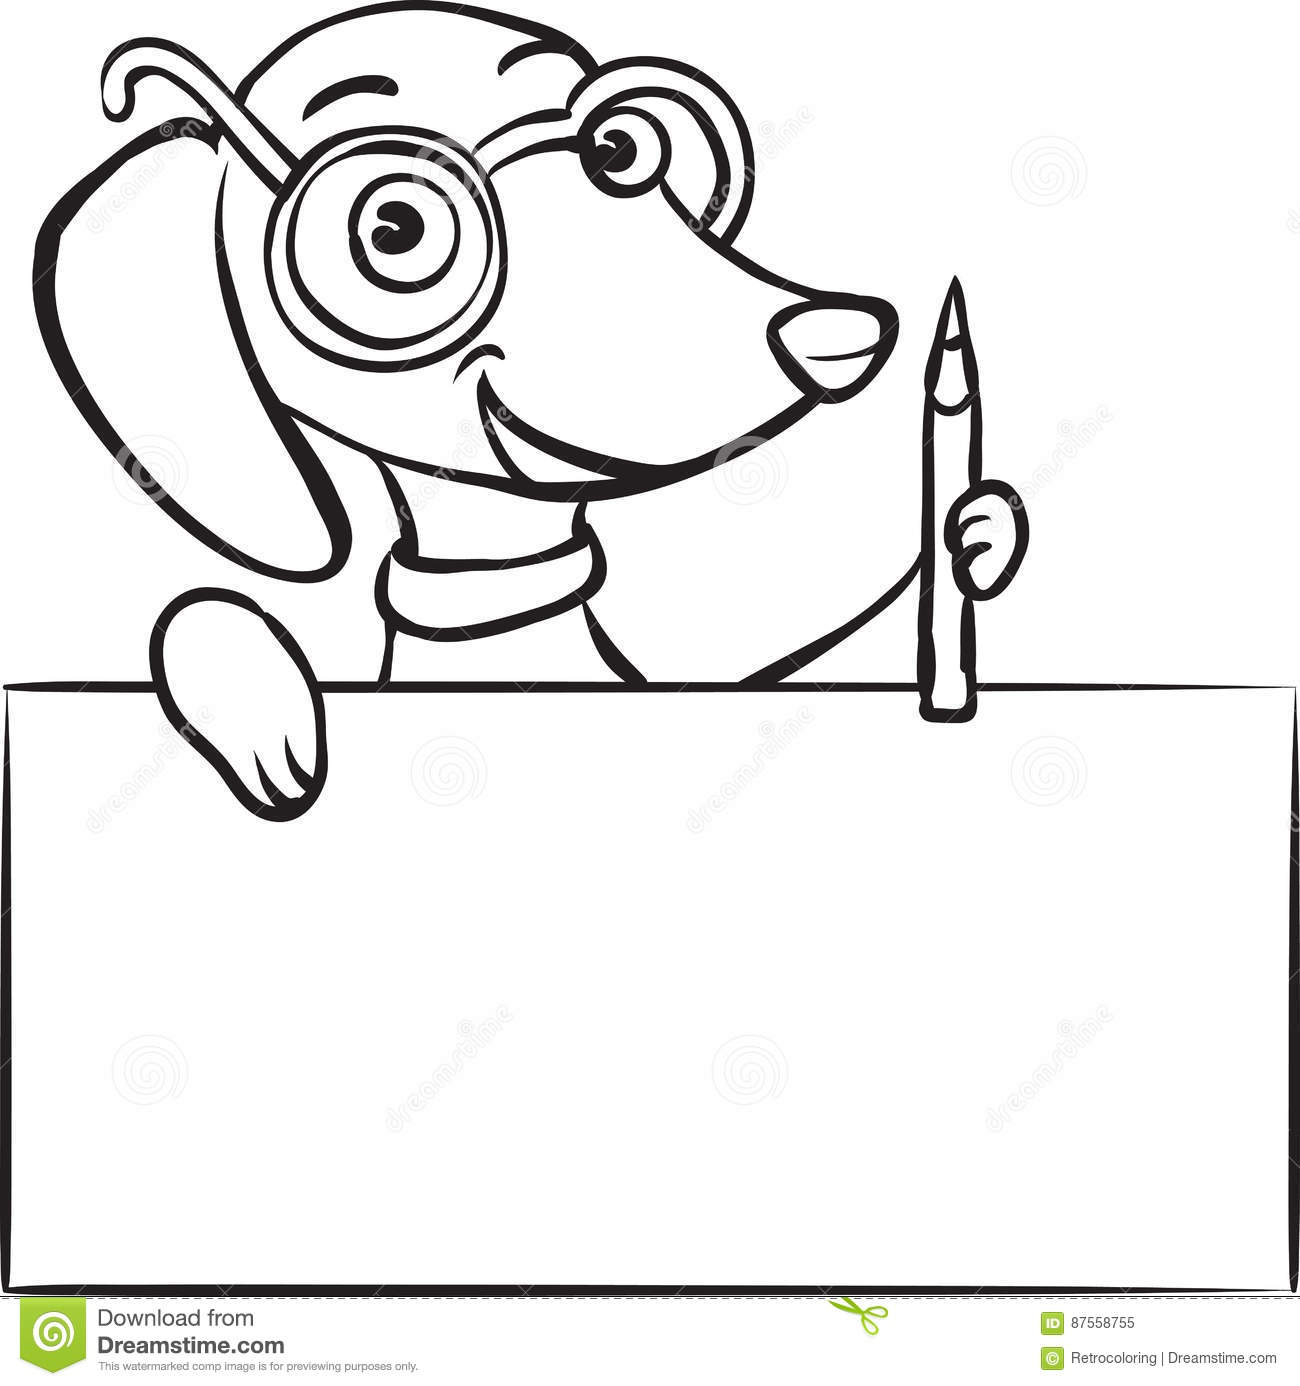 Whiteboard drawing cartoon dachshund dog with pencil and